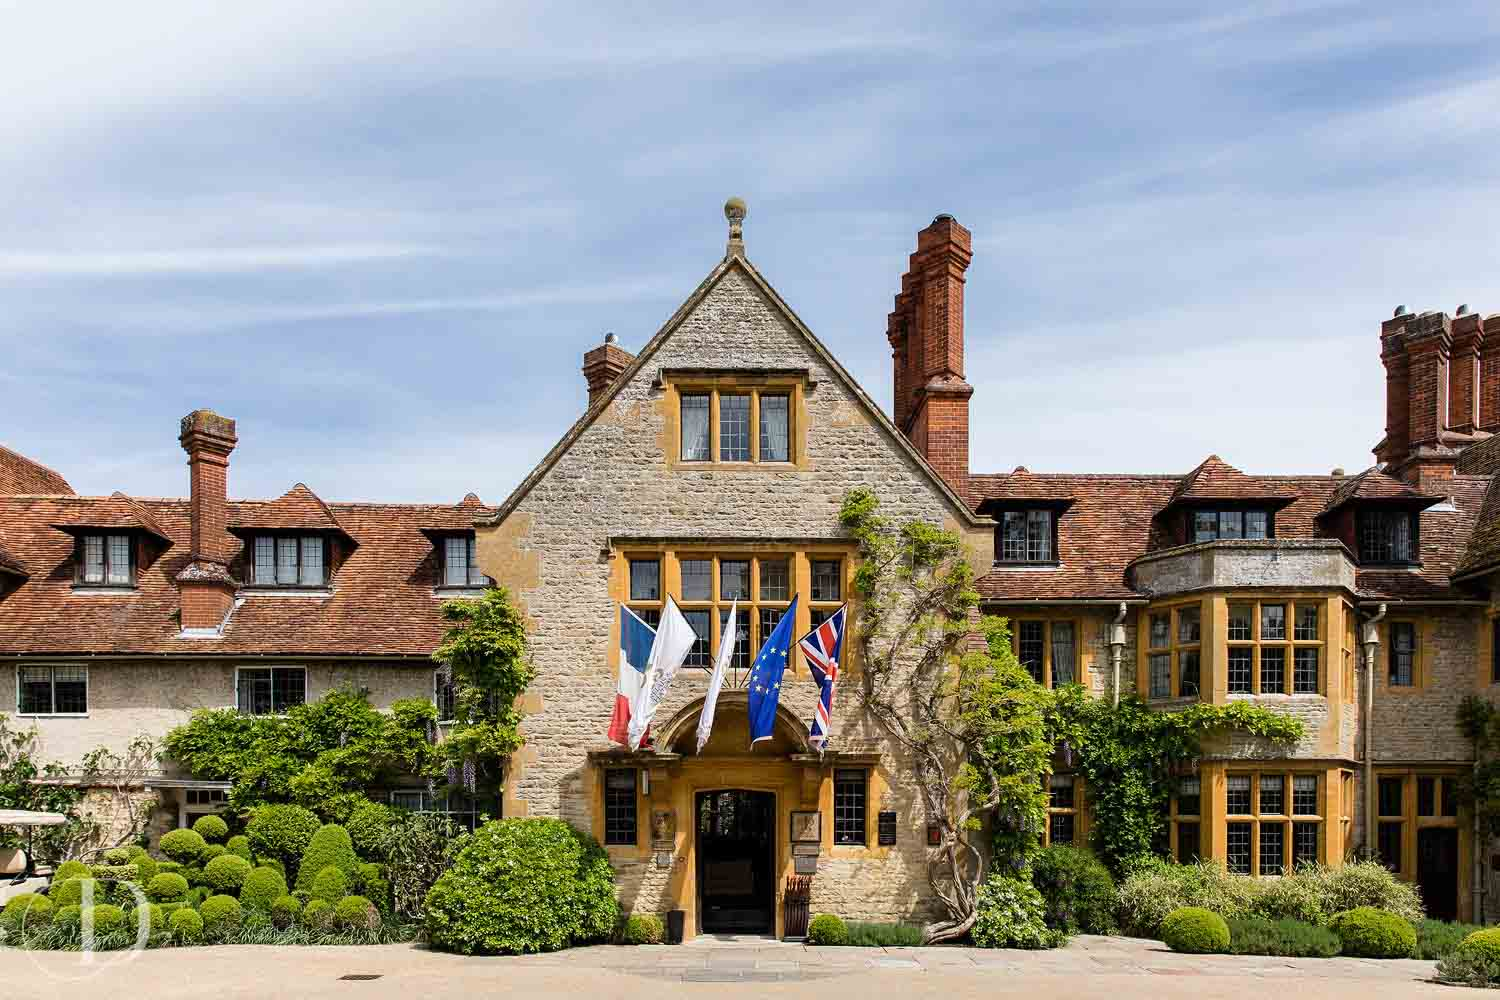 Le Manoir aux Quat'Saisons wedding